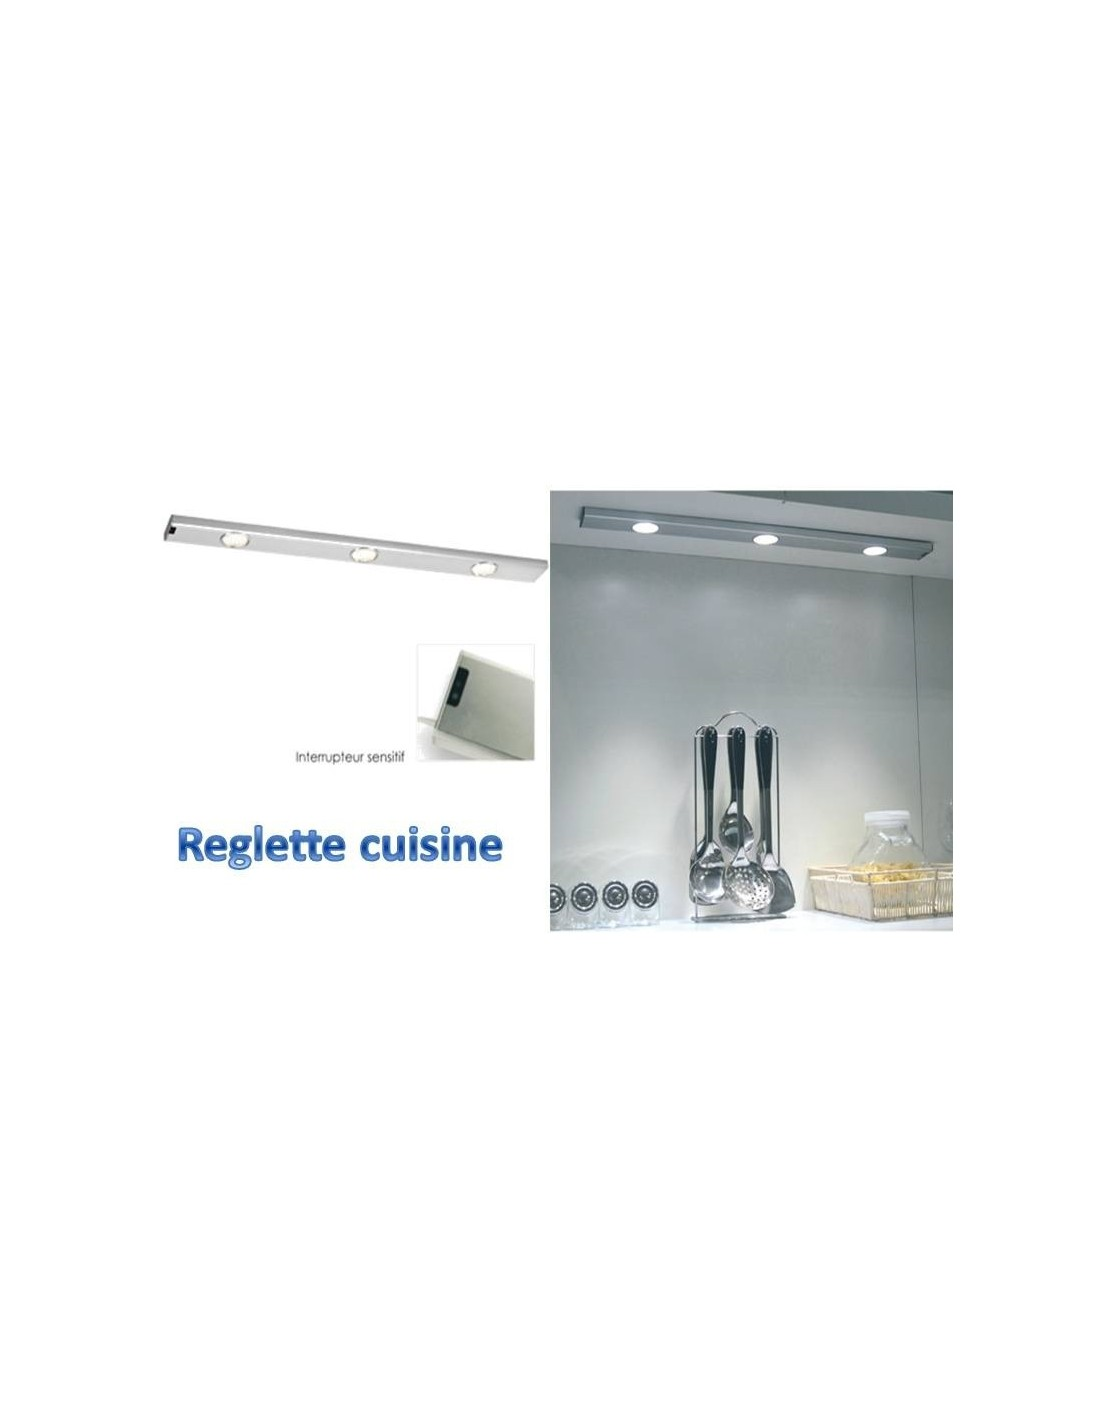 finest rglette de cuisine leds clairage sousmeuble de cuisine with luminaire meuble cuisine. Black Bedroom Furniture Sets. Home Design Ideas